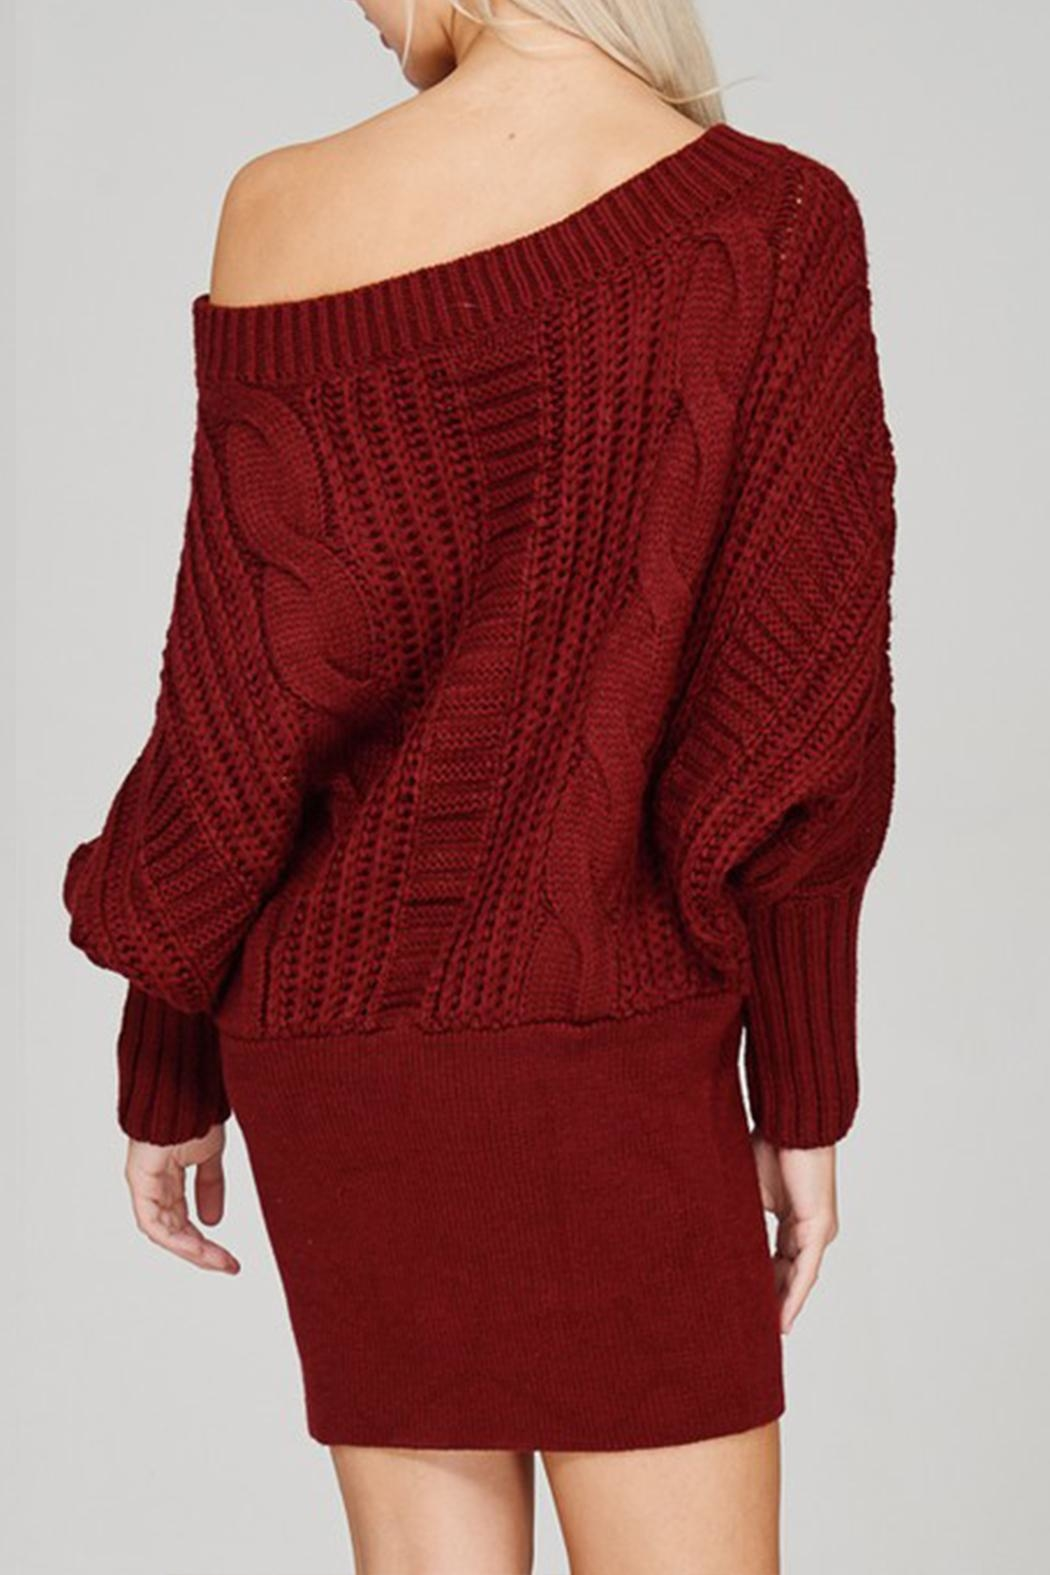 Main Strip Cable-Knit Sweater Mini-Dress - Side Cropped Image